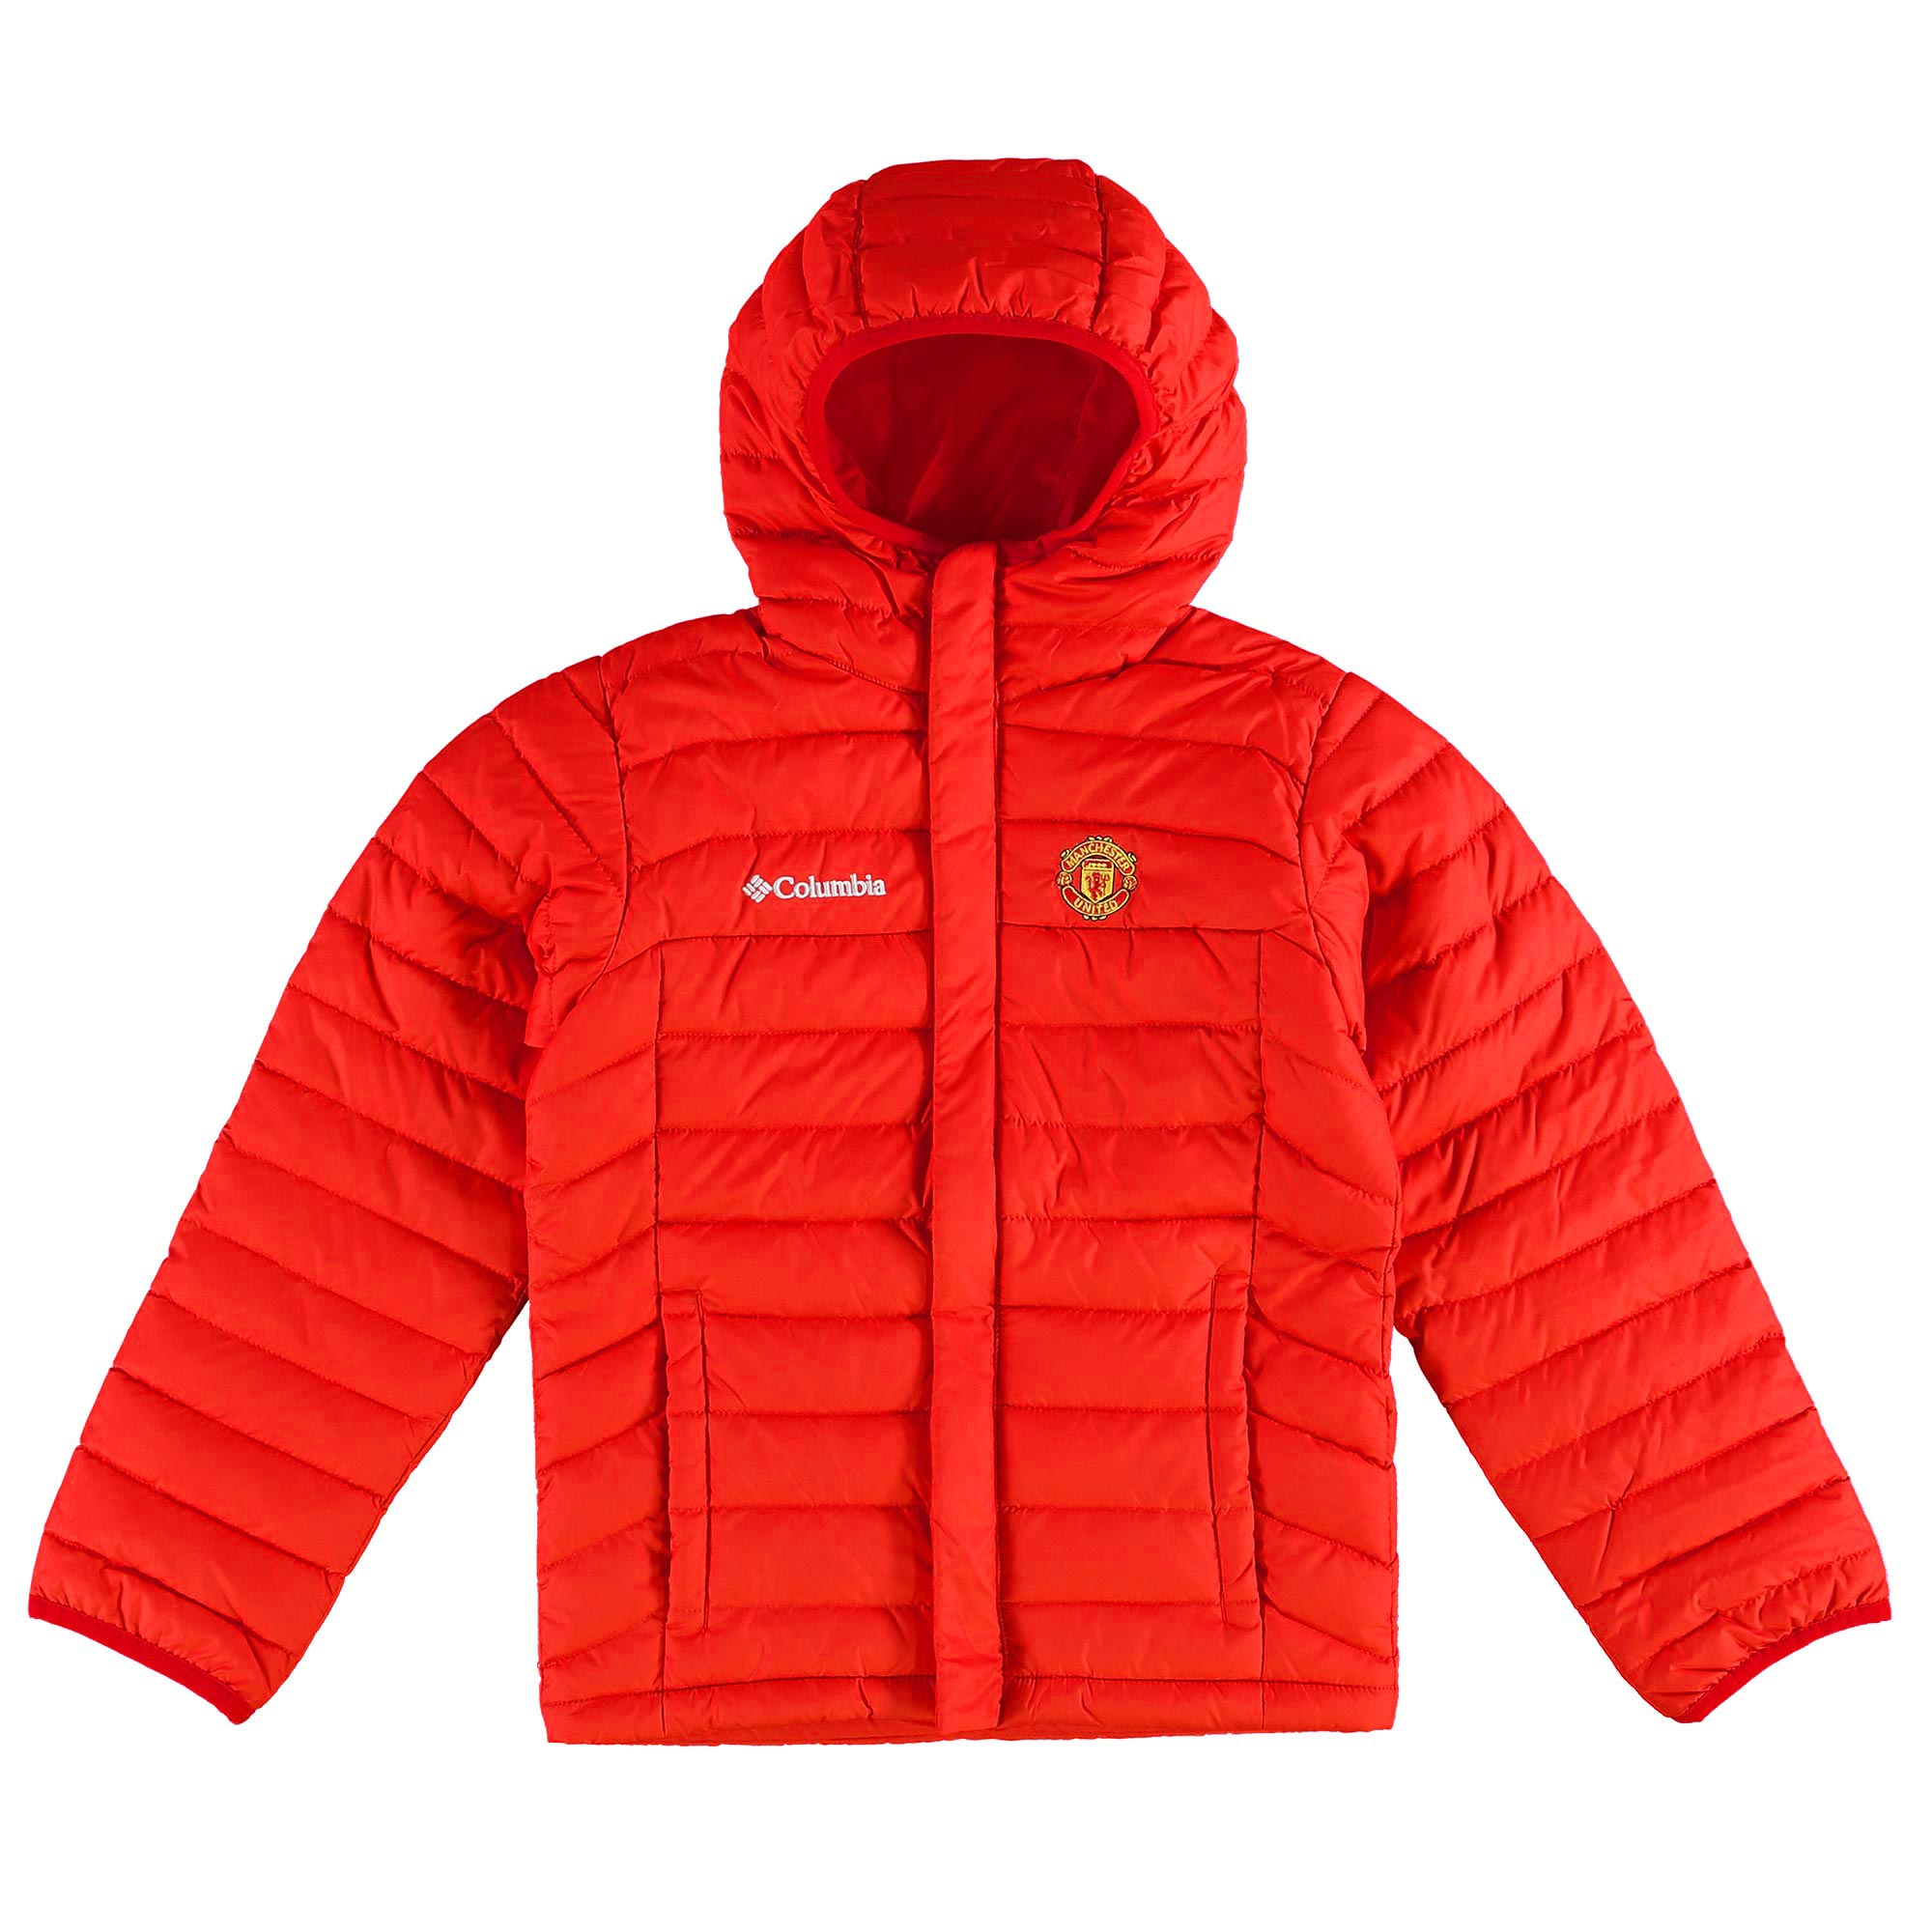 Manchester United Columbia Powder Lite Puffer Jacket - Red - Kids